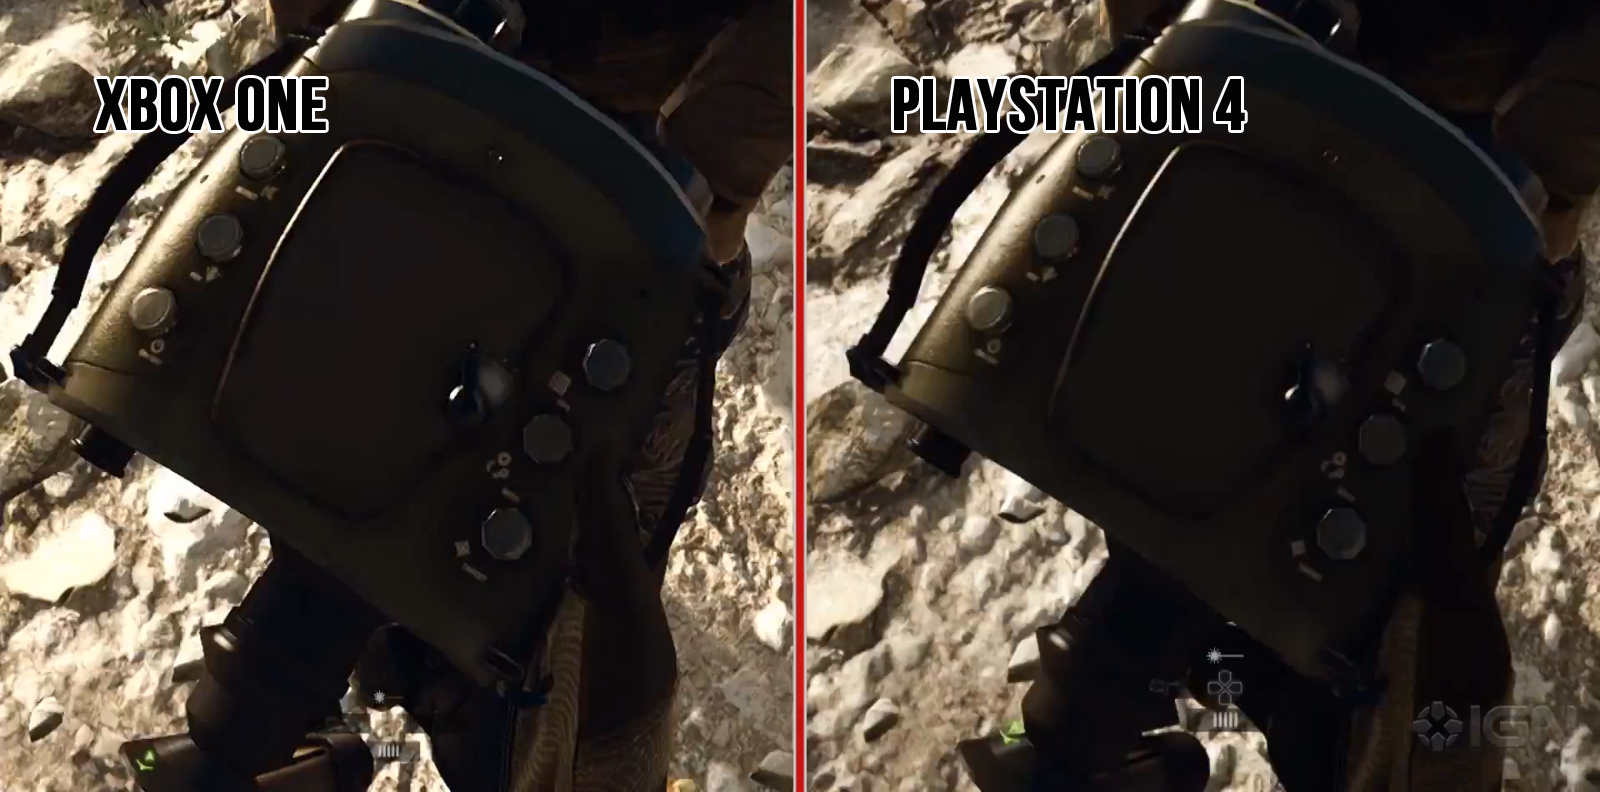 Xbox One Vs Ps4 Graphics Side By Side Xbox One & PS4 Sid...